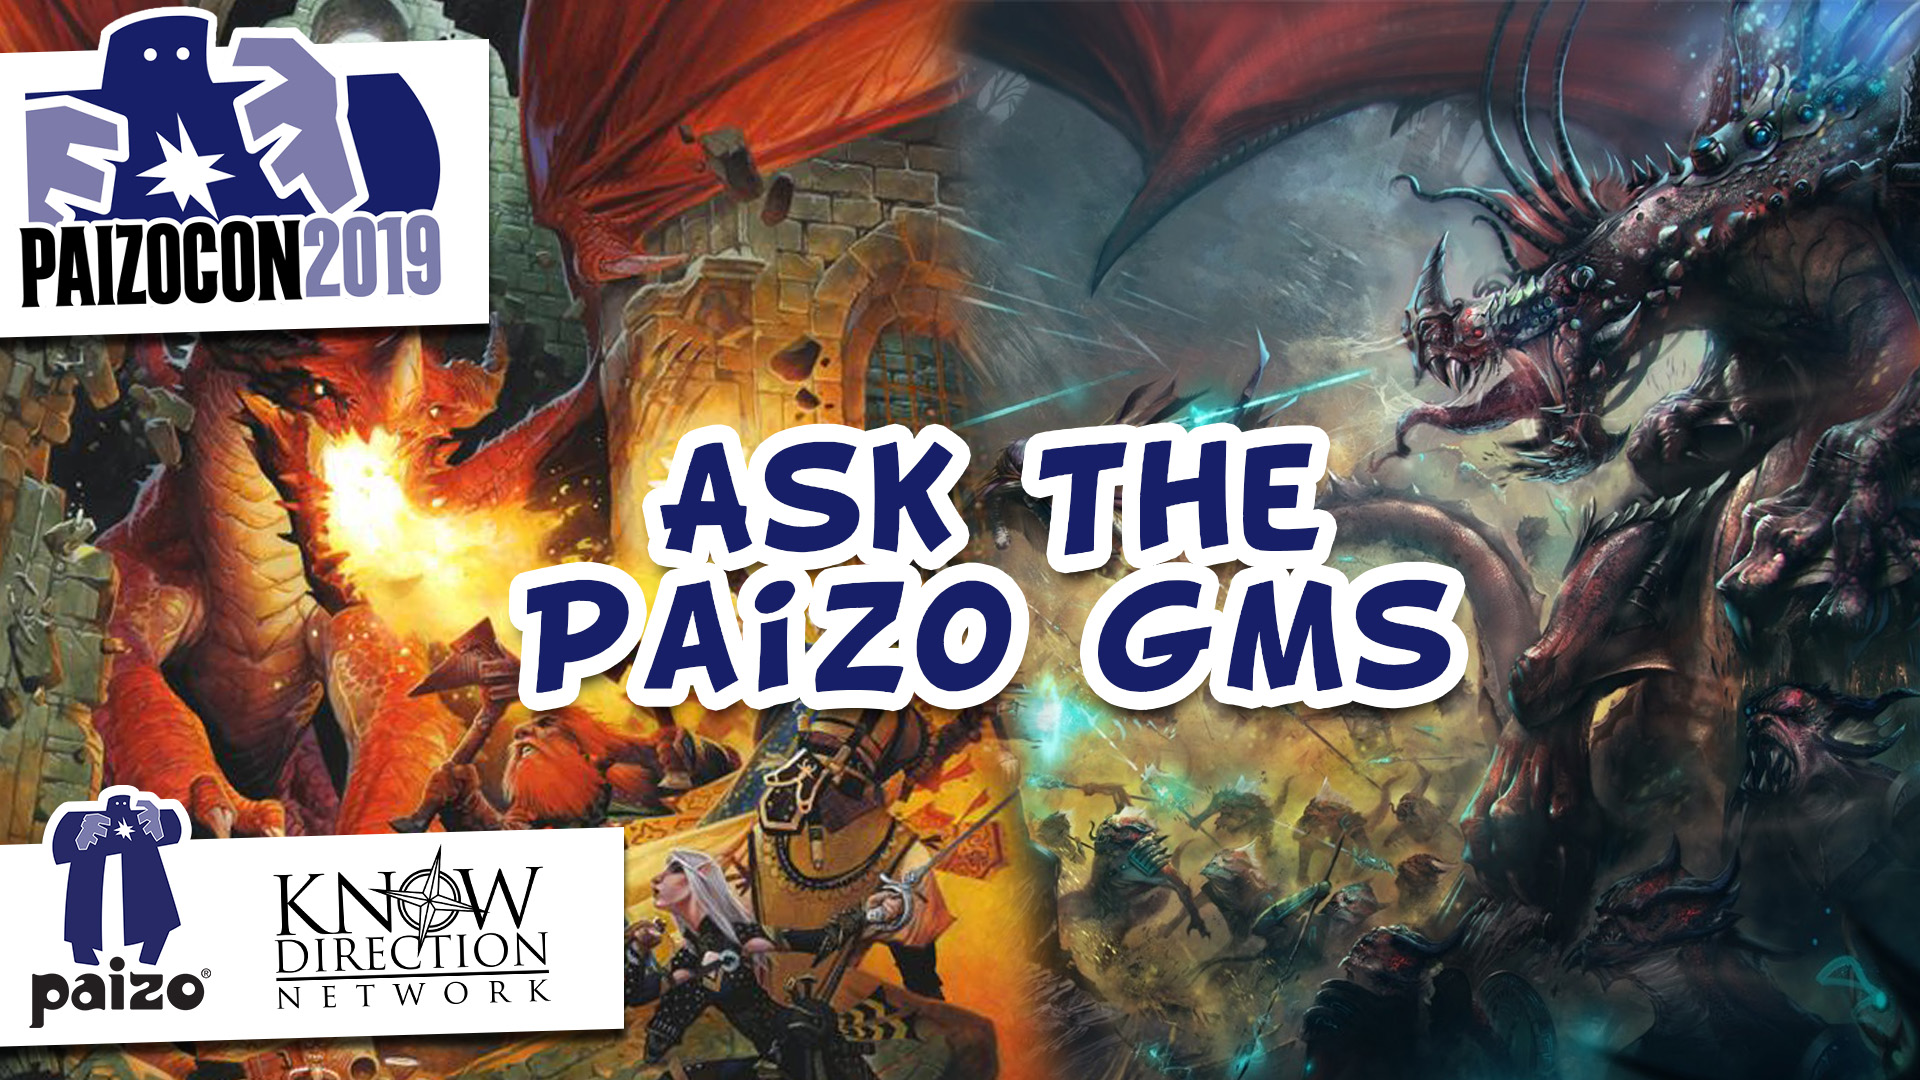 PaizoCon 2019 - Ask the Paizo GMs